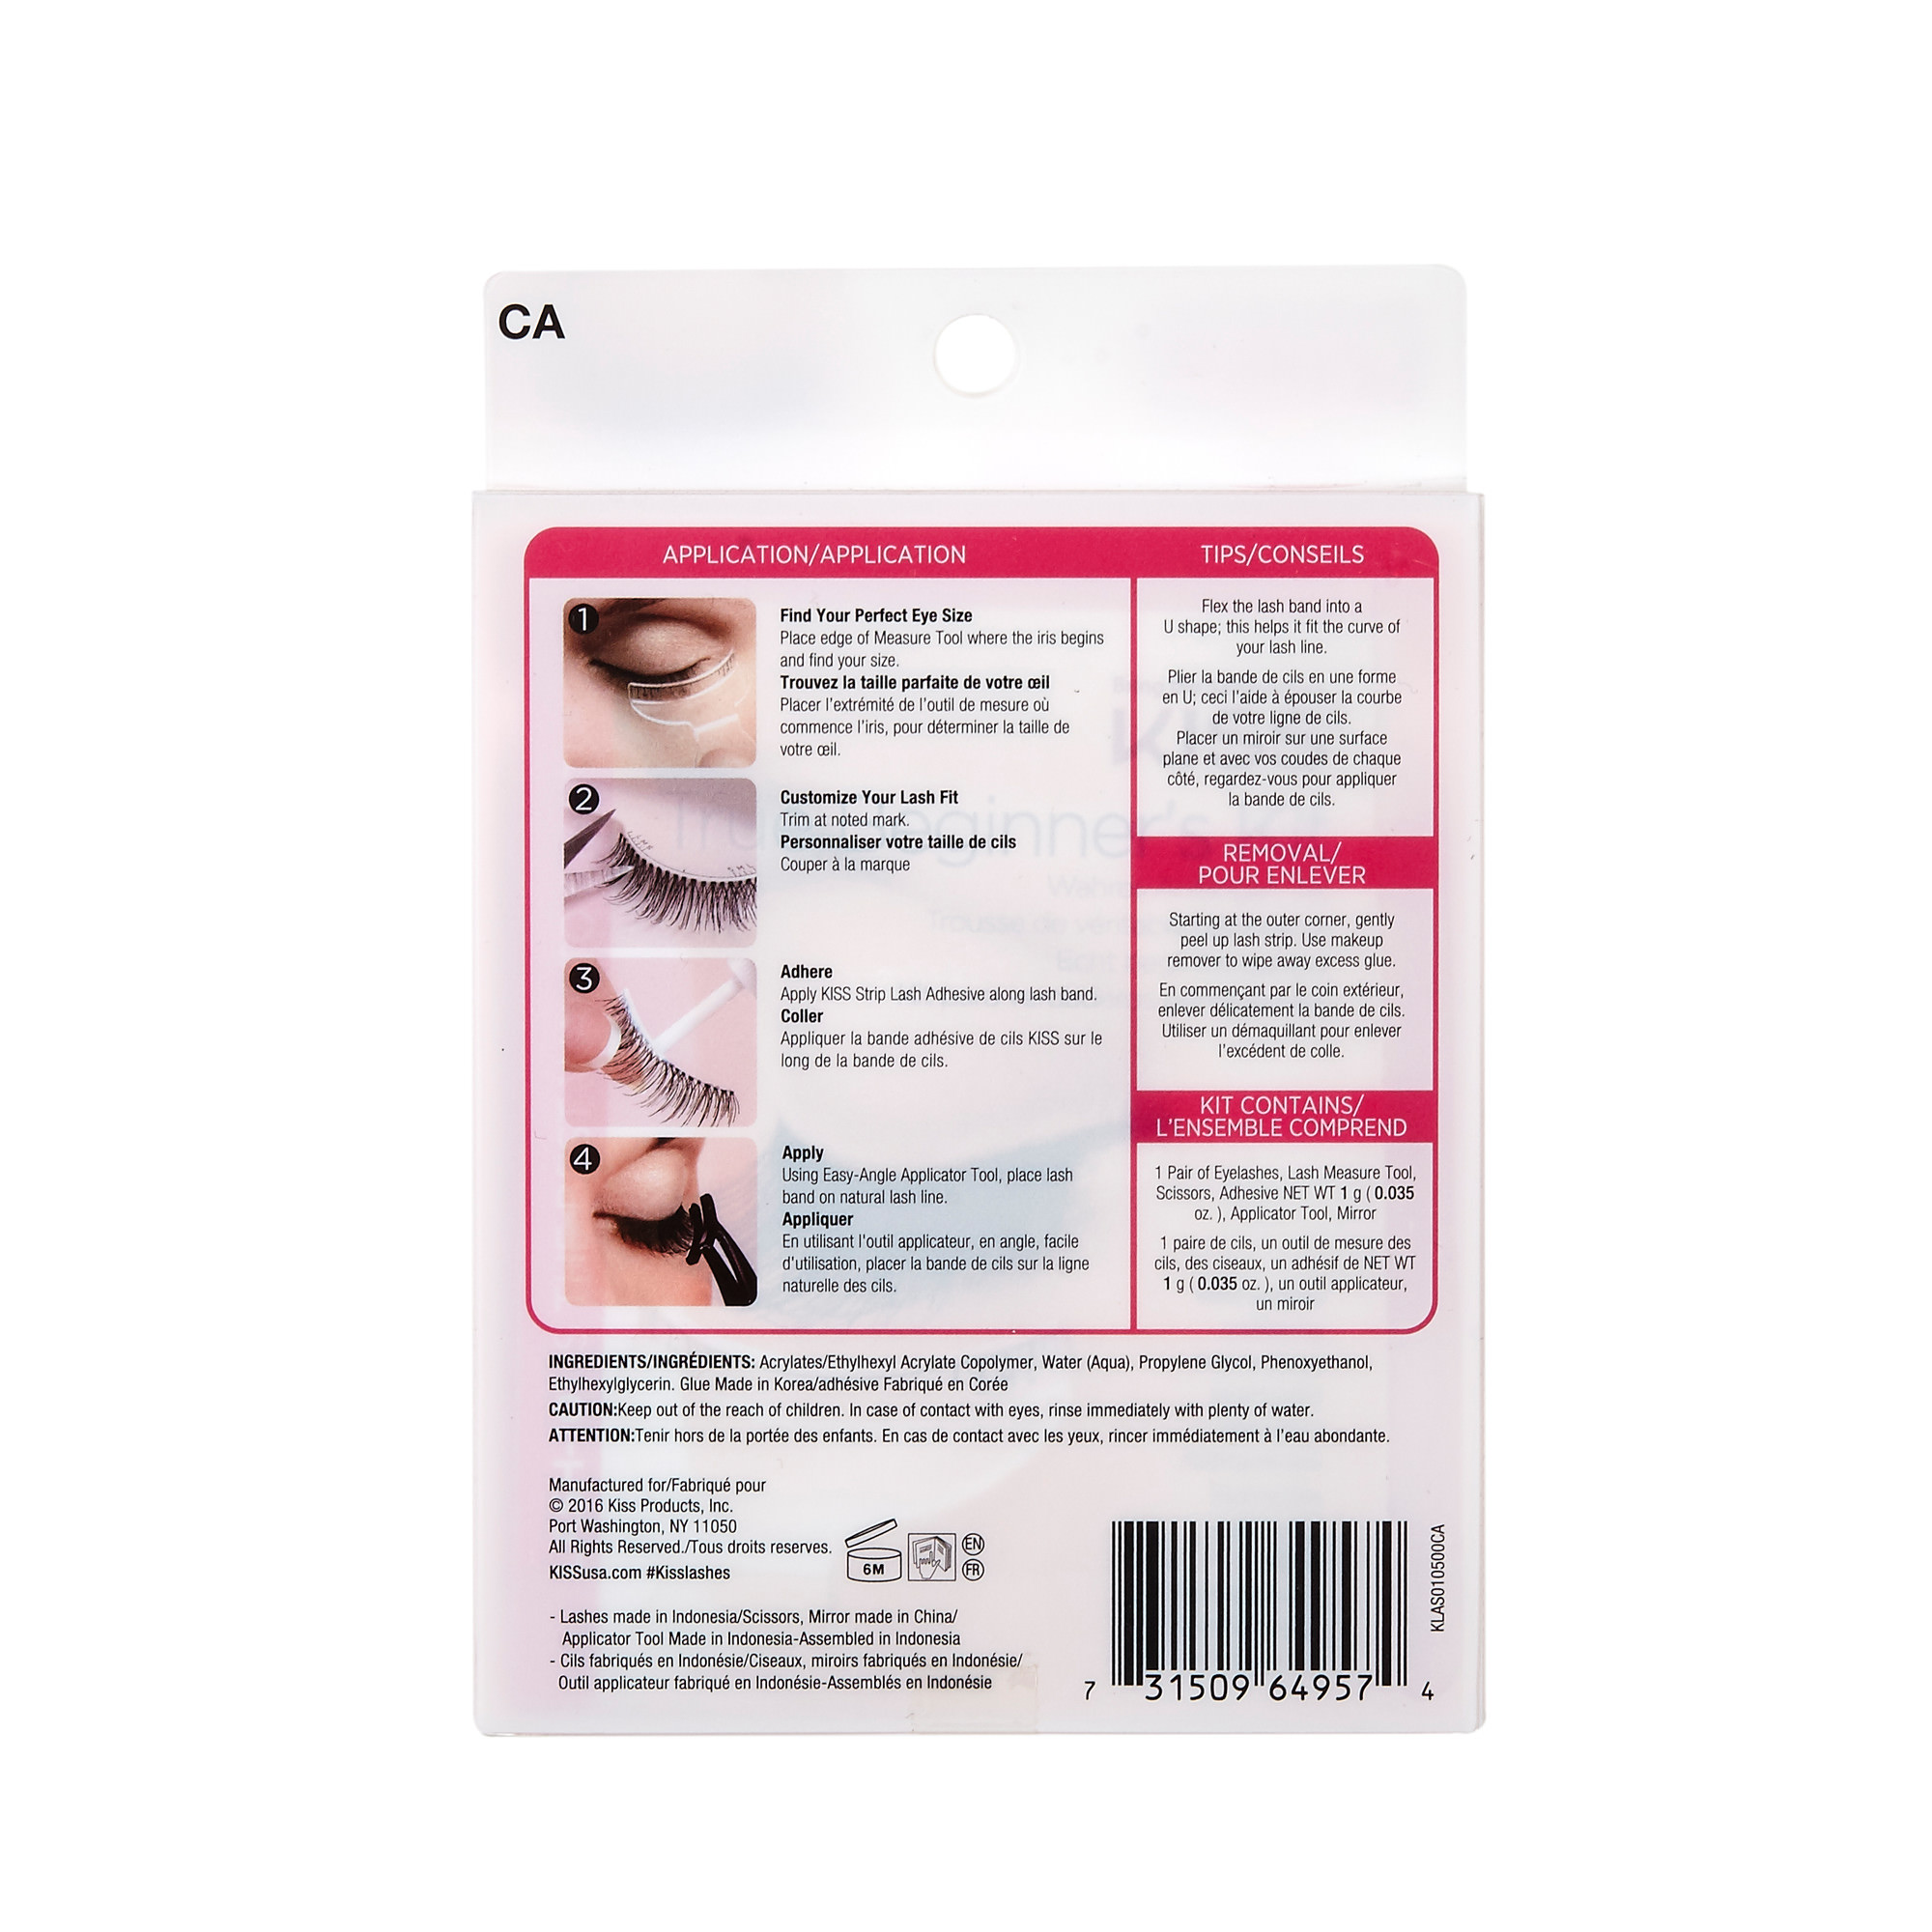 Lash 101 All In One by kiss products #3